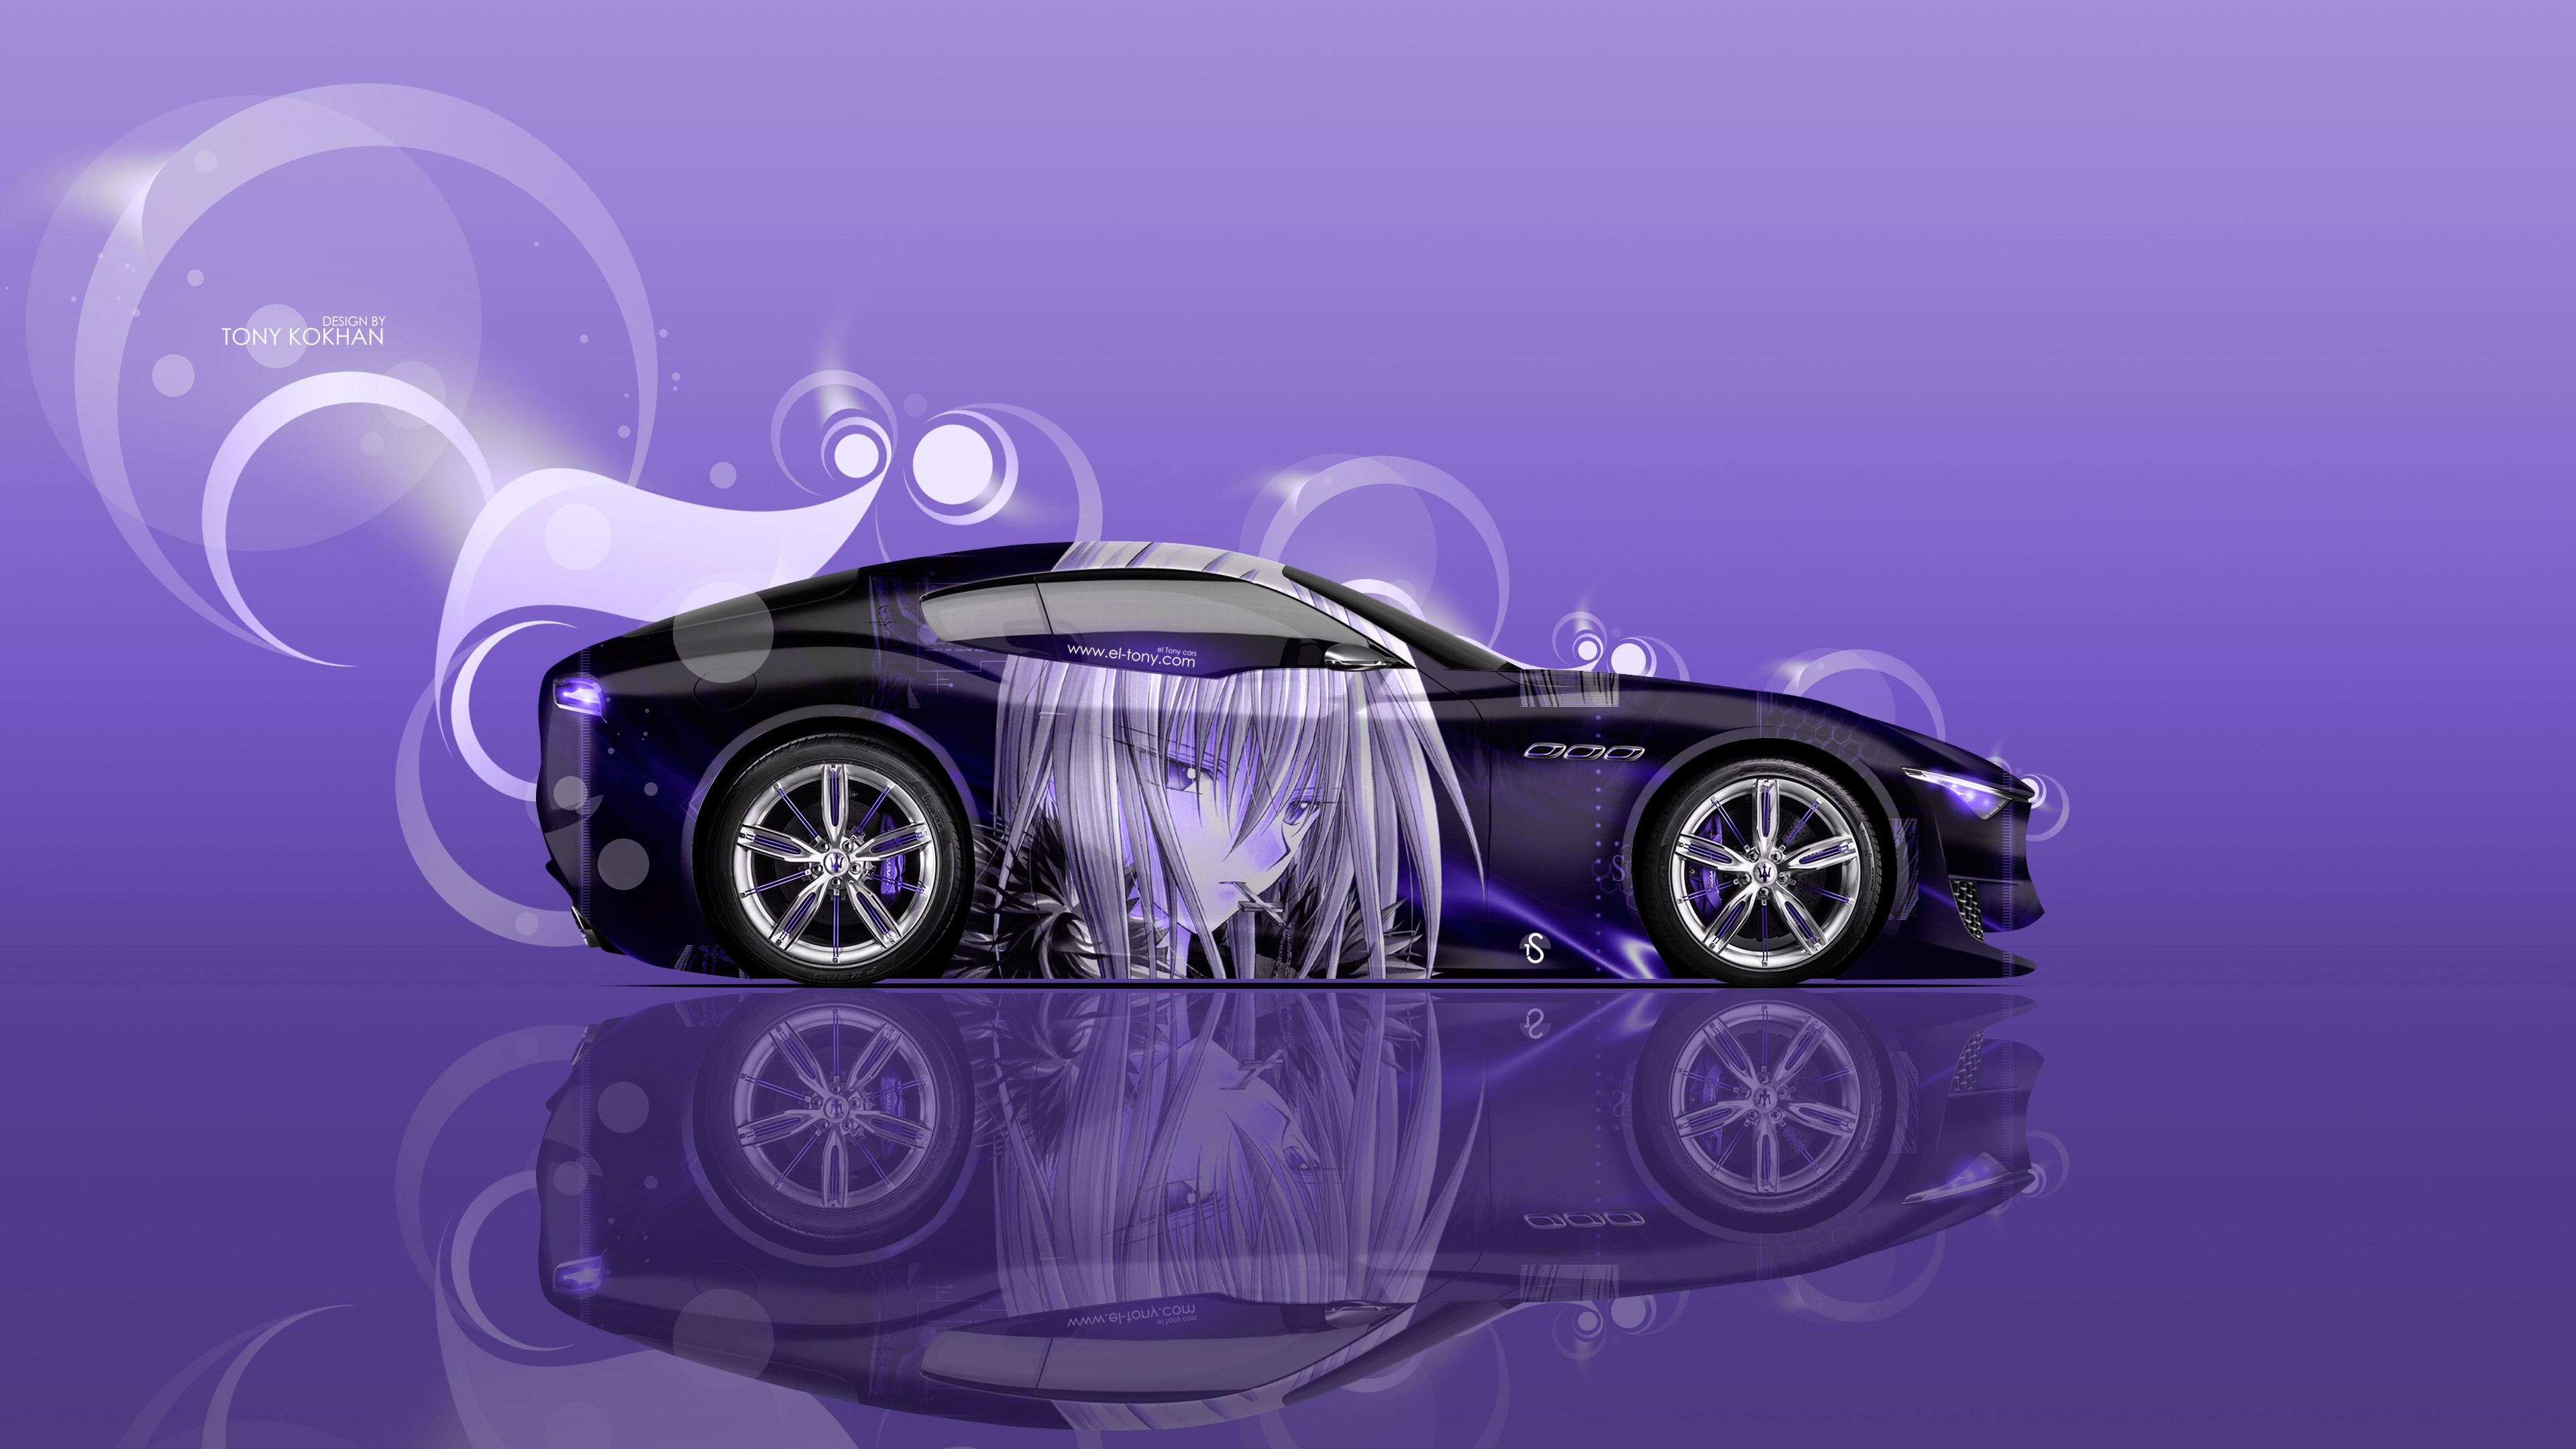 Maserati MC12 Water Car 2014 · Maserati Alfieri Side Anime Boy Aerography  Car 2016 Wallpapers 4K